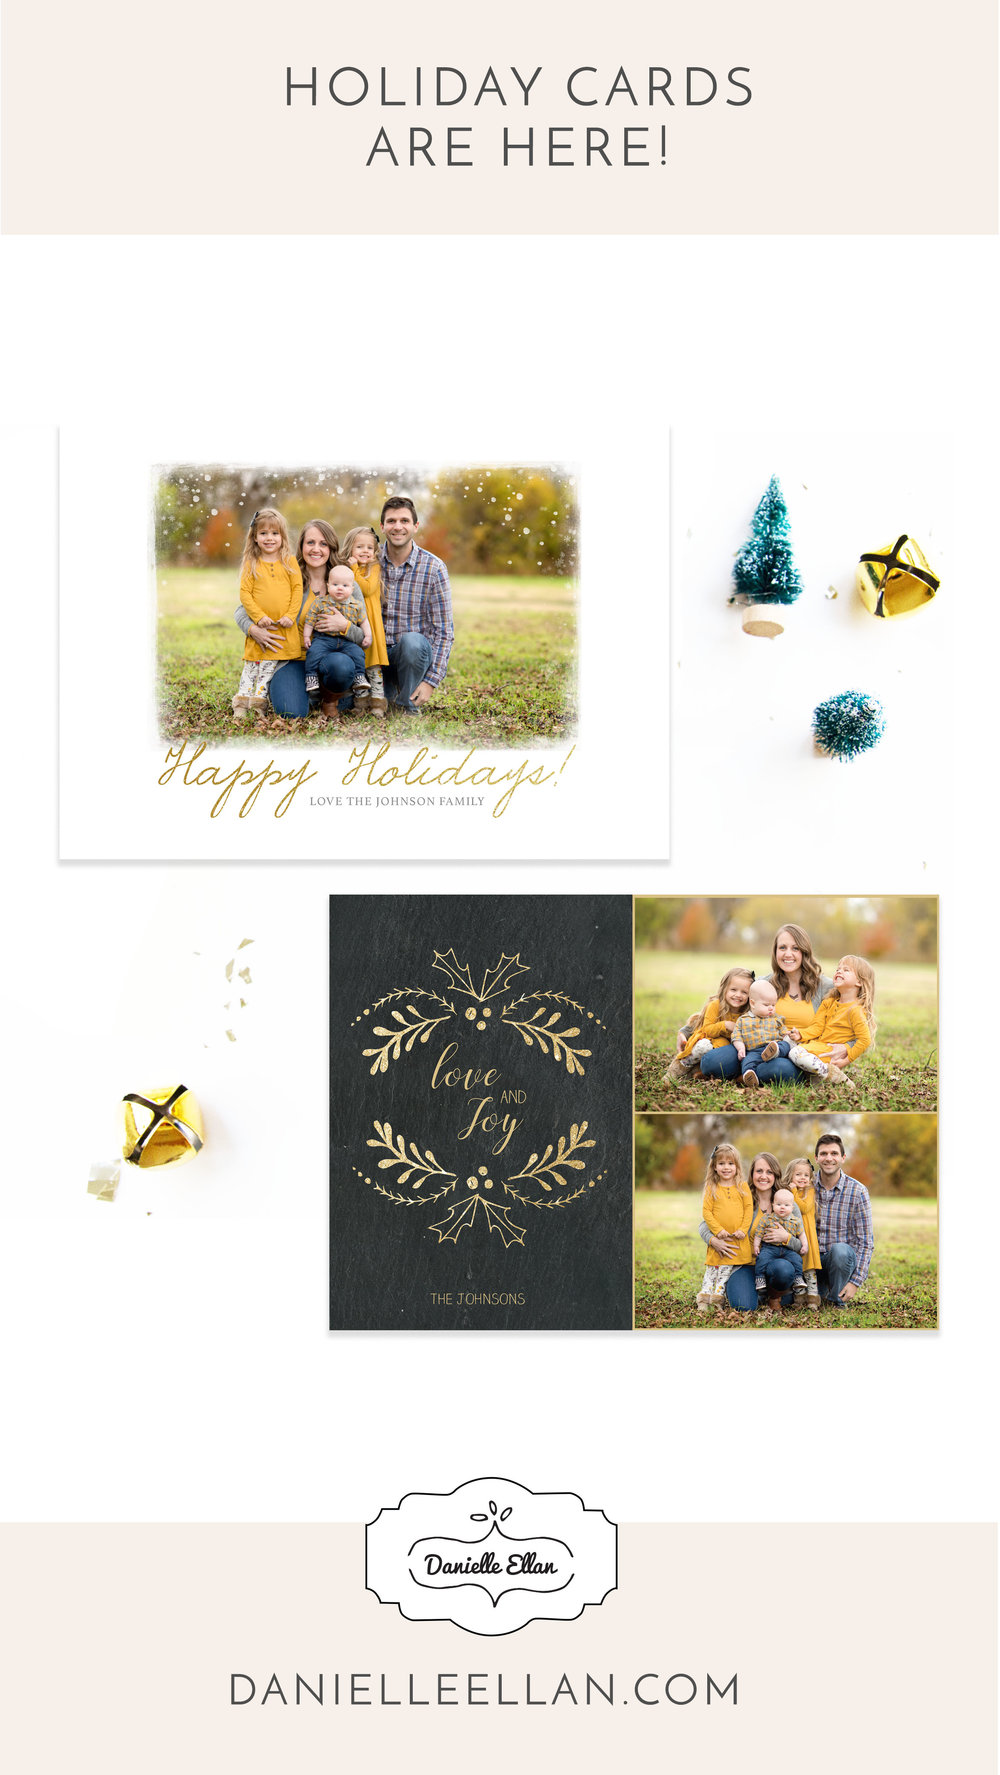 Holiday Cards by Danielle Ellan 2